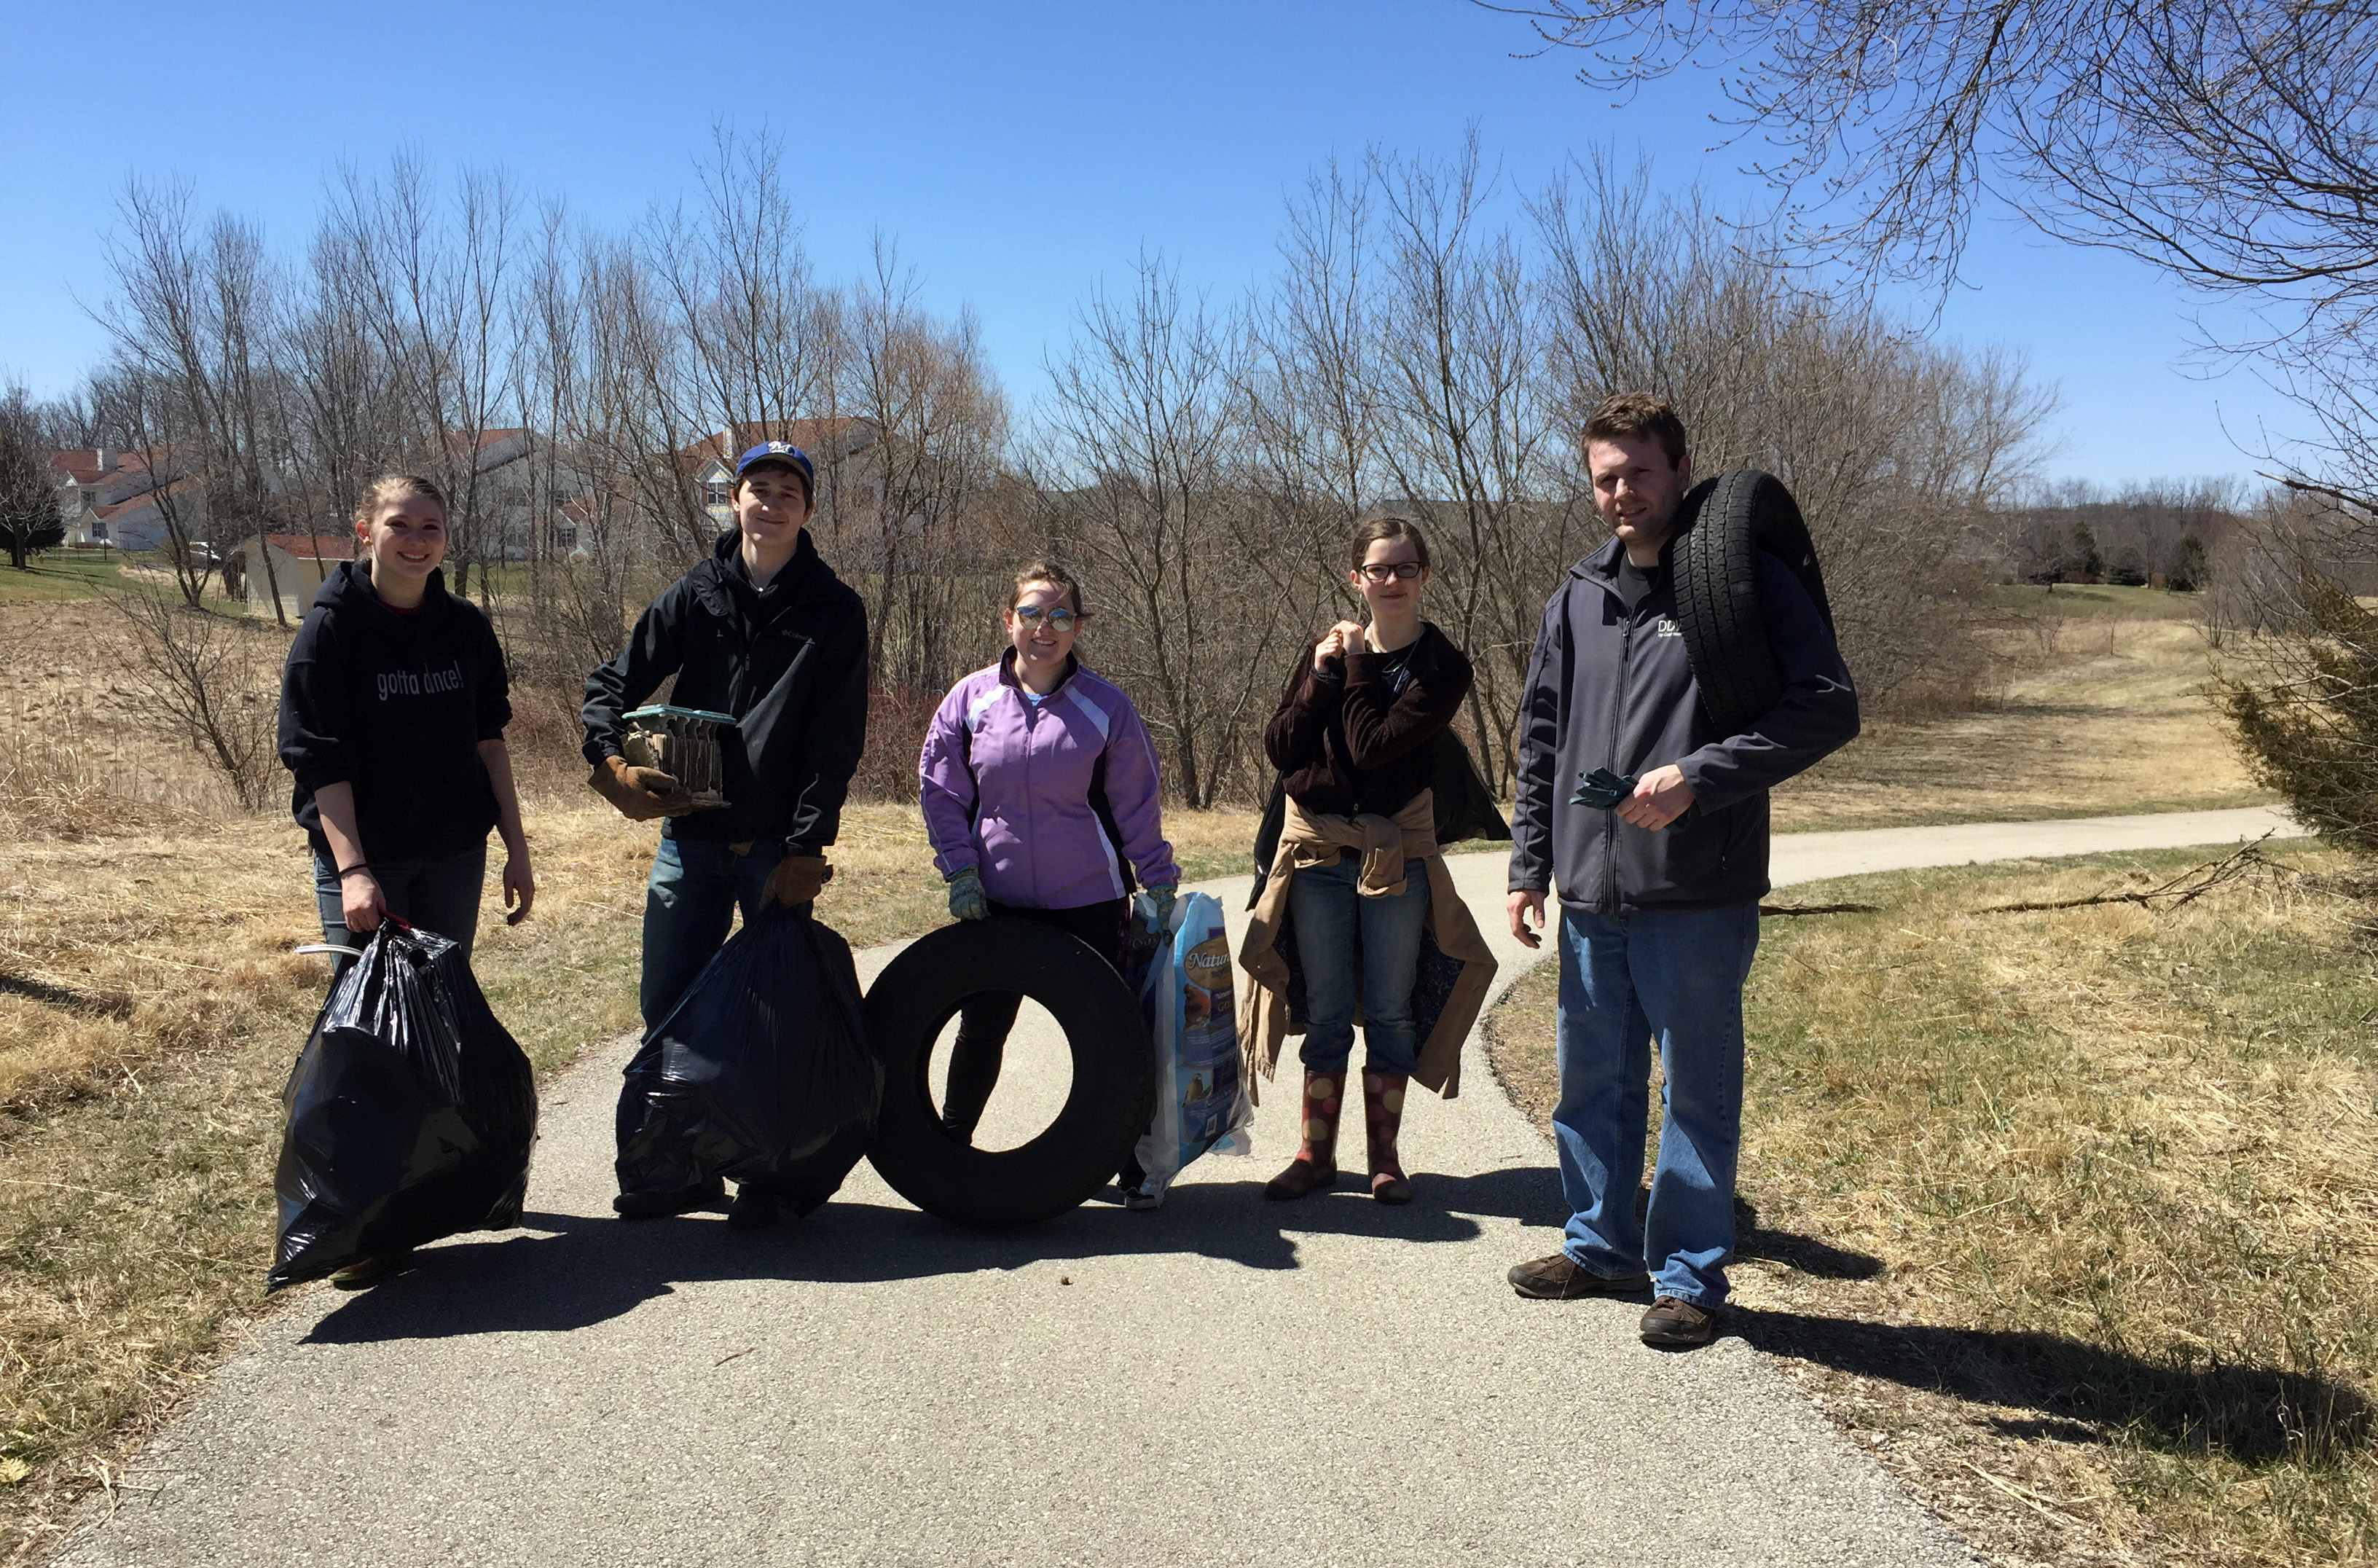 Five volunteers pose with garbage bags and tires collected during clean up event.